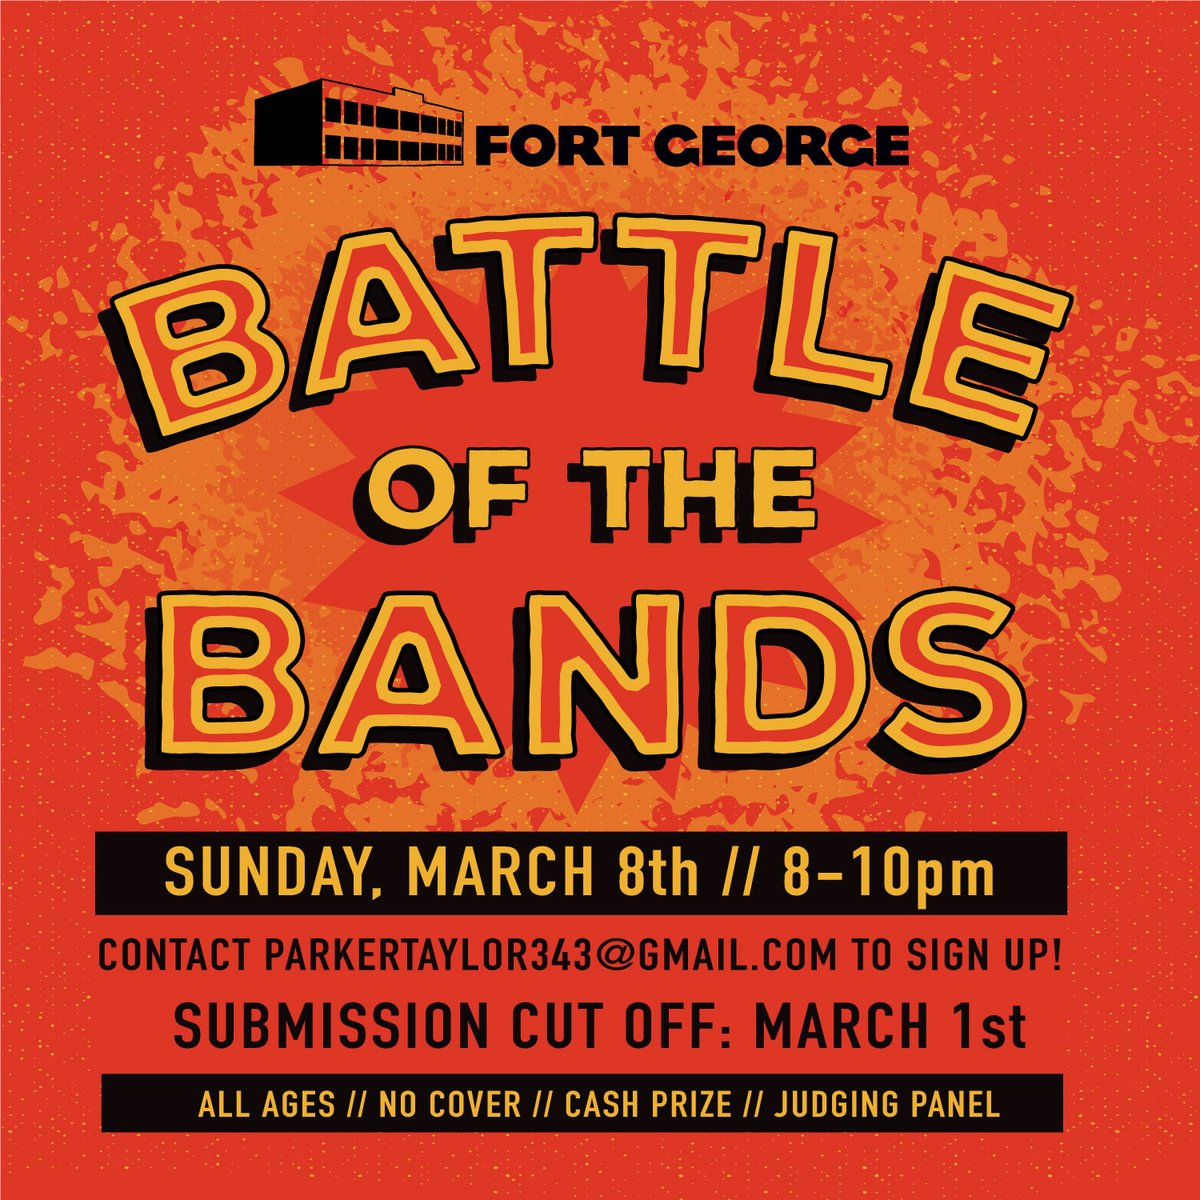 On March 8th, in lieu of Sunday Night Music, the Upstairs stage will open up to the public.  Fort George employee, Taylor, will be putting on a Battle of The Bands for her Senior Project. If you are interested in participating, please email parkertaylor343@gmail.com. pic.twitter.com/ybEOXWoJWx